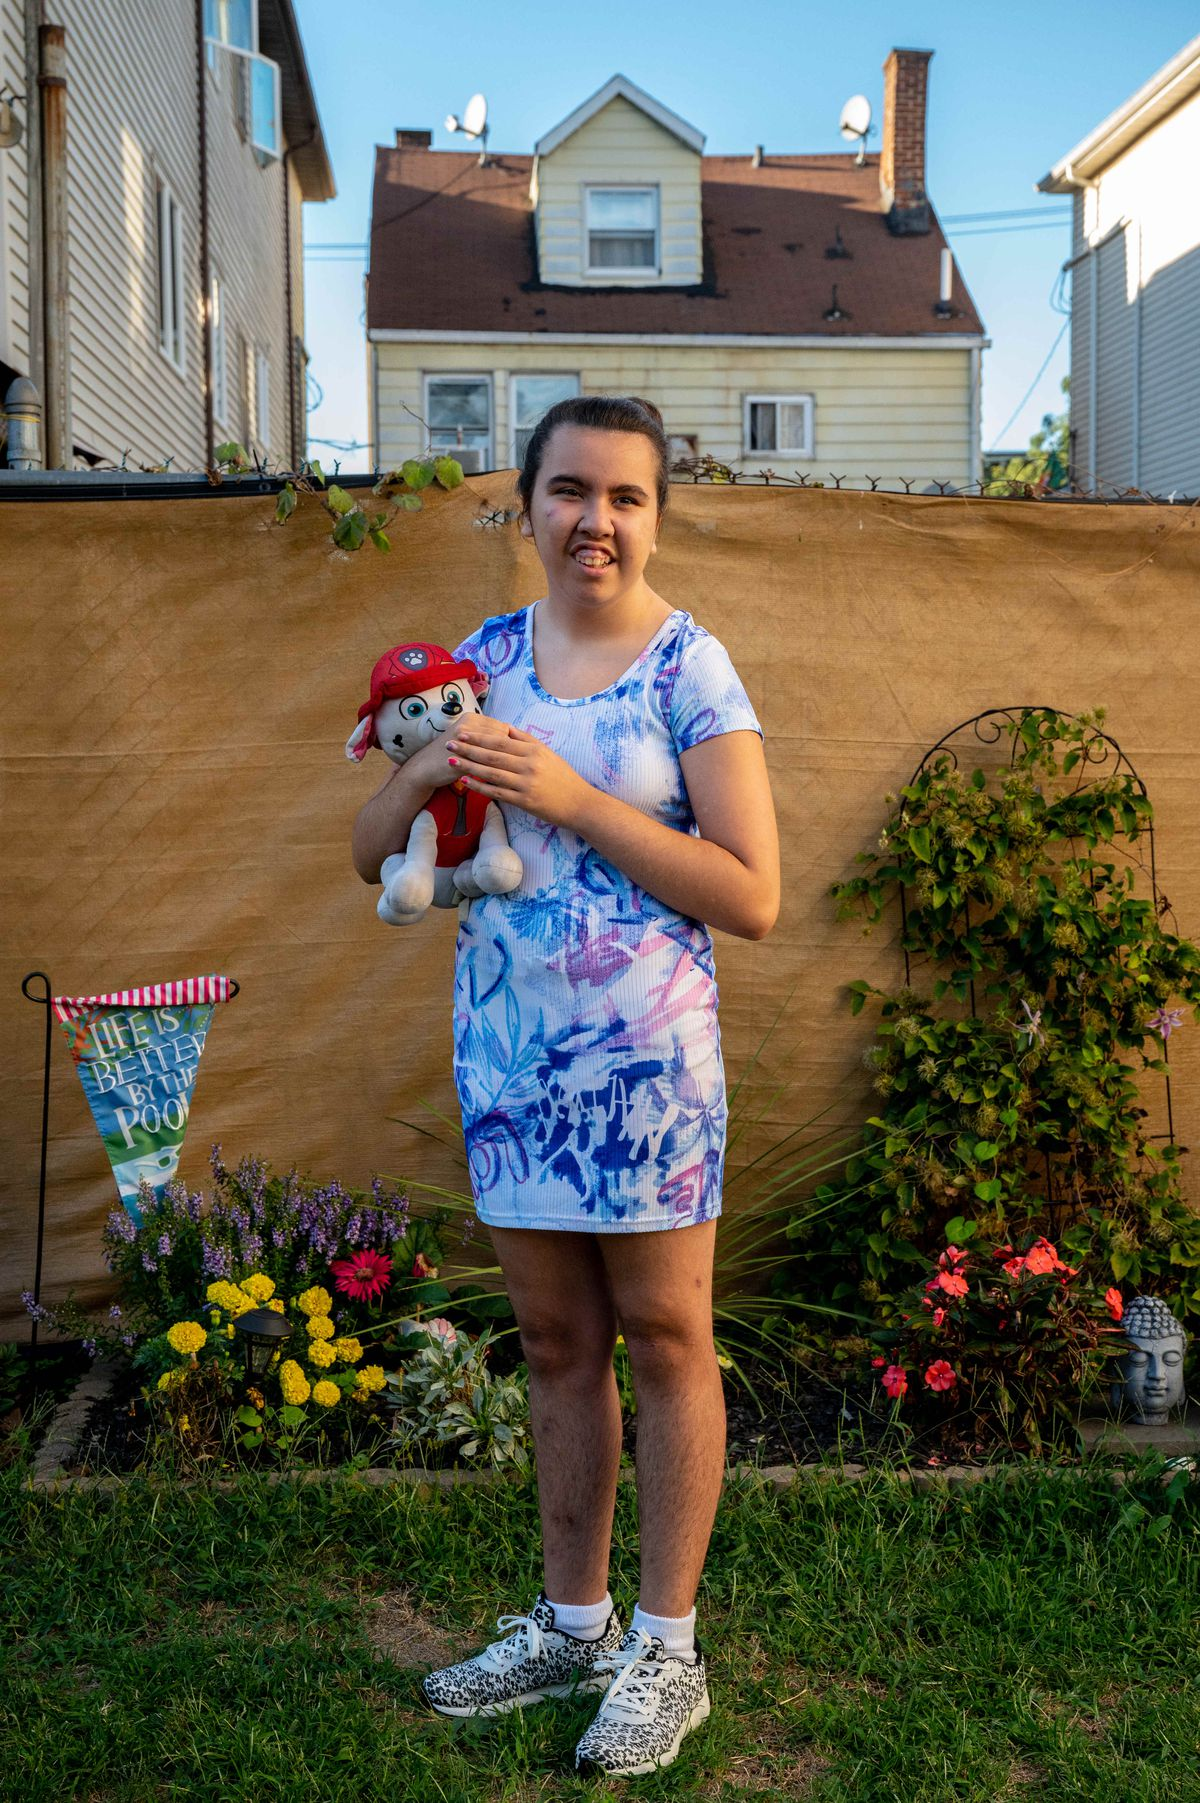 A teenaged girl holding a stuffed animal poses for a portrait in her backyard.